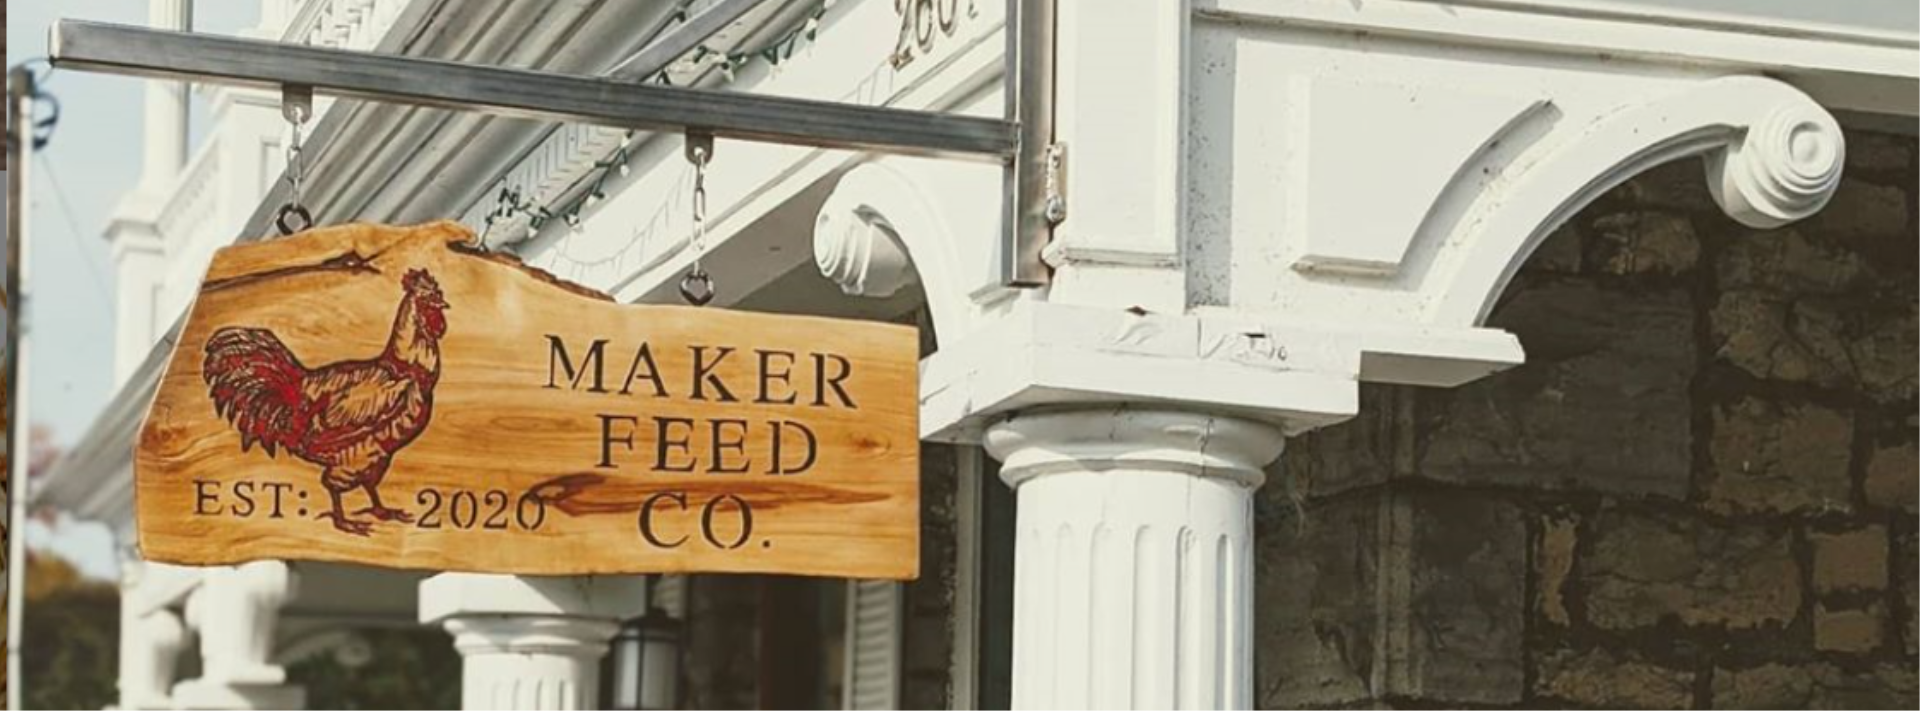 Maker Feed Co Restaurant - Picture